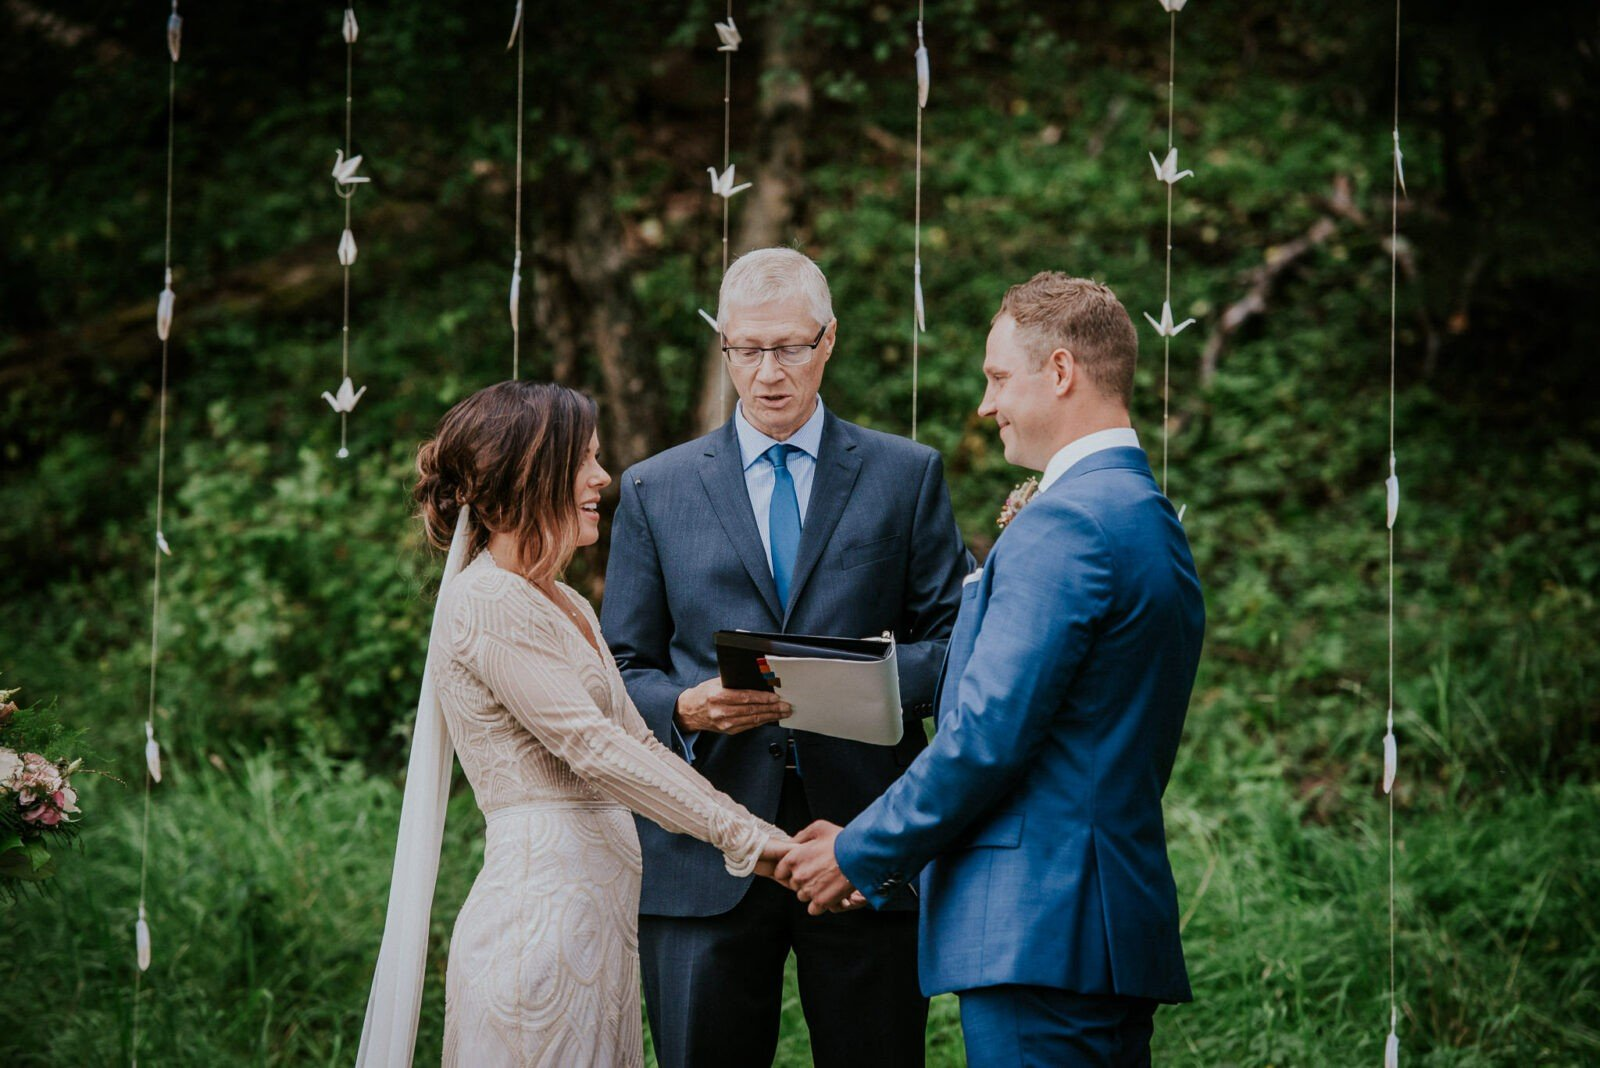 Woodland wedding ceremony.